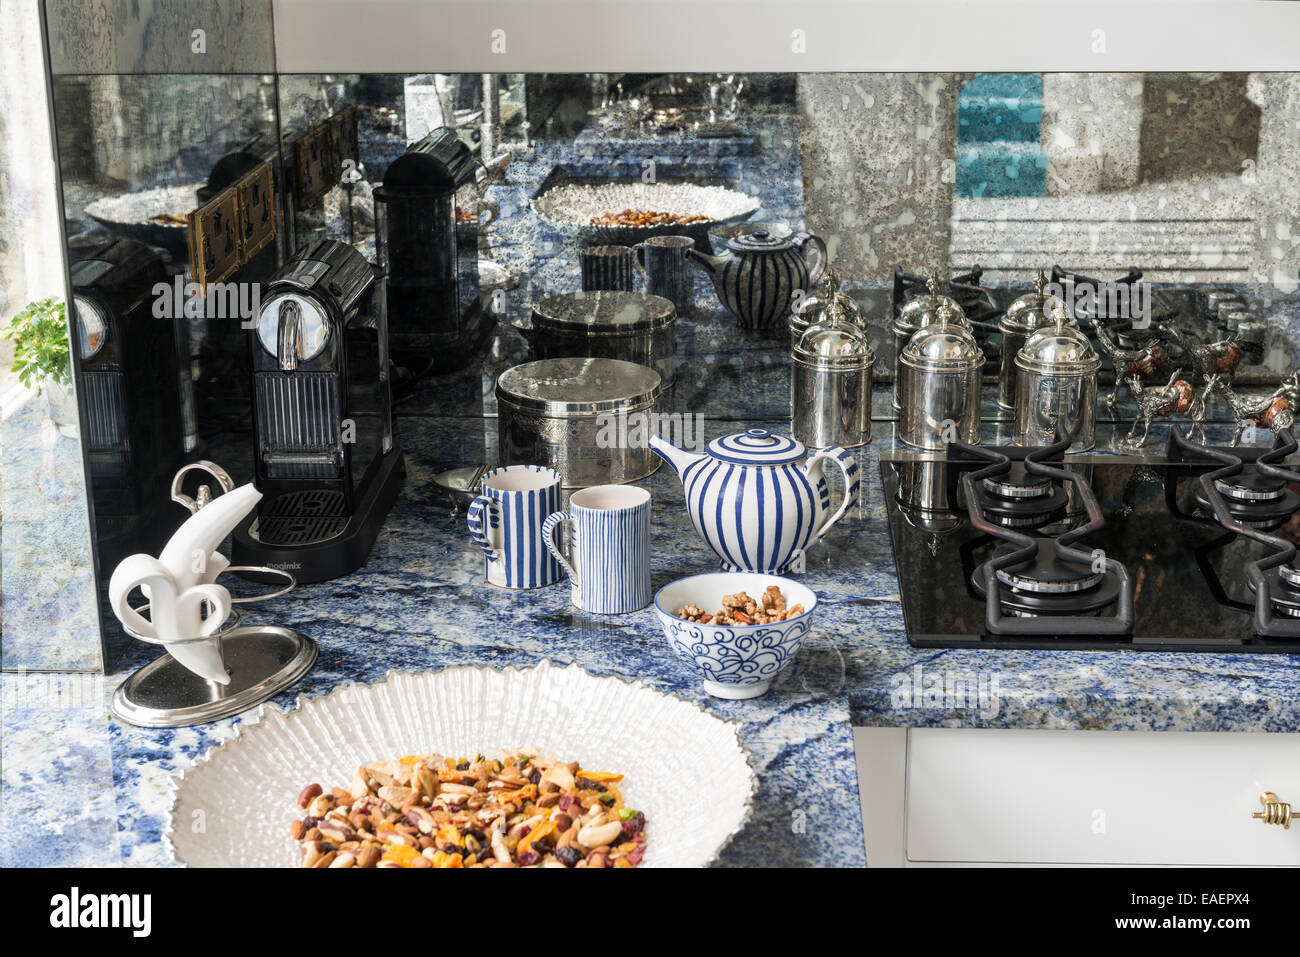 Nuts and fruit in dish on marbled kitchen countertop with hob and striped mugs - Stock Image